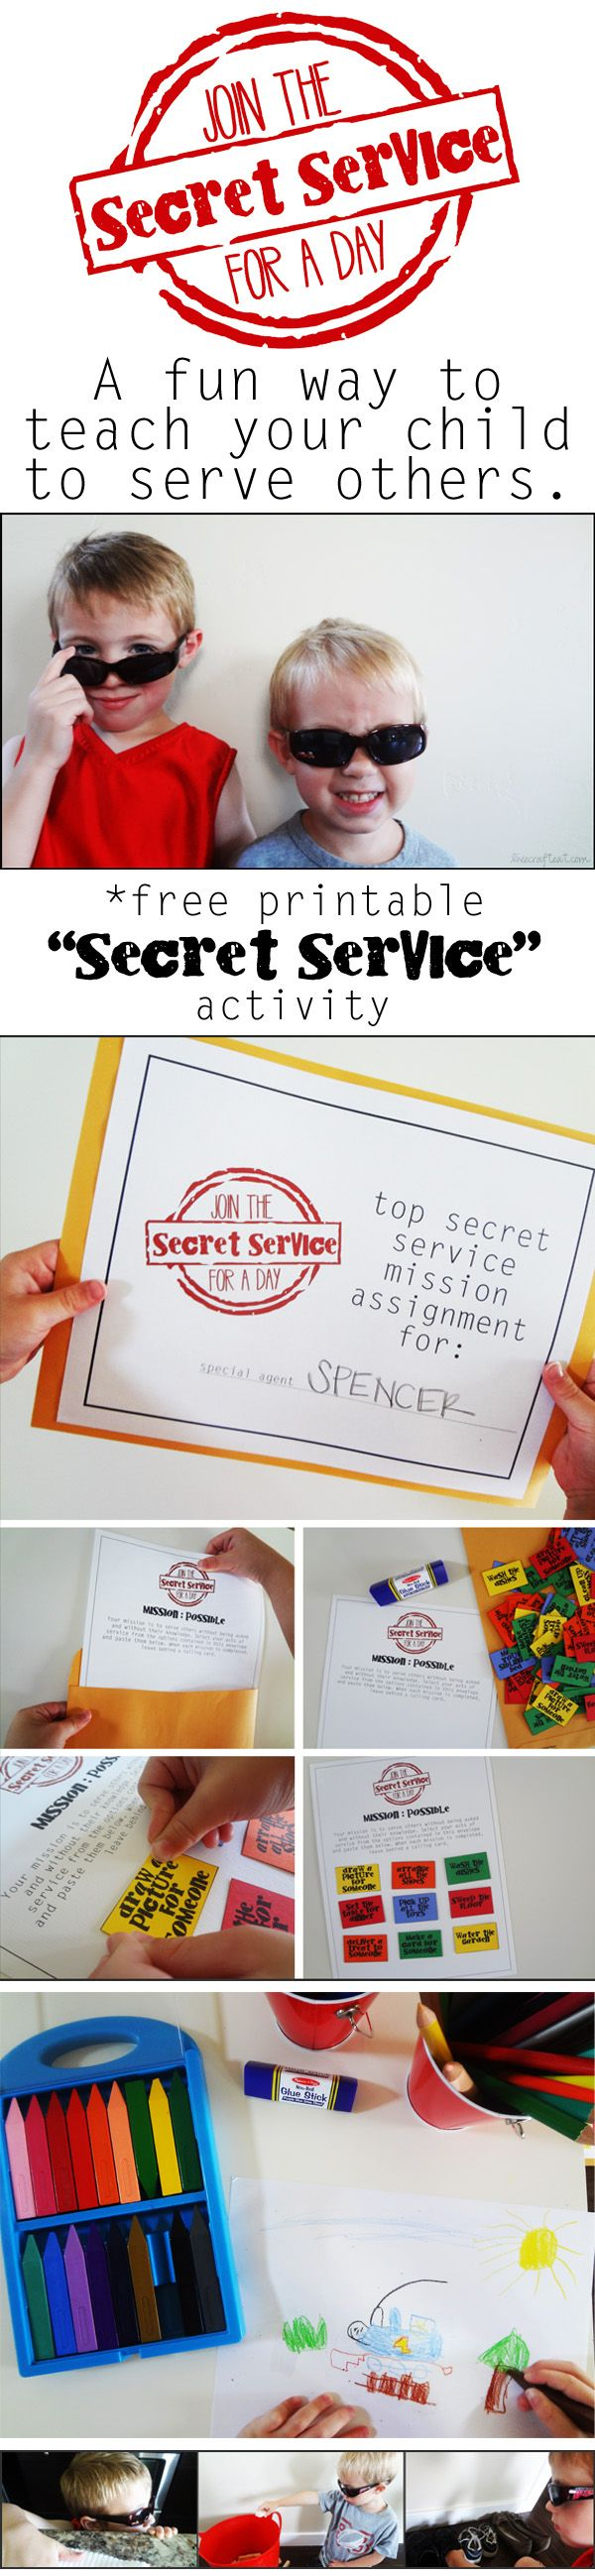 Teaching kids about service #activity